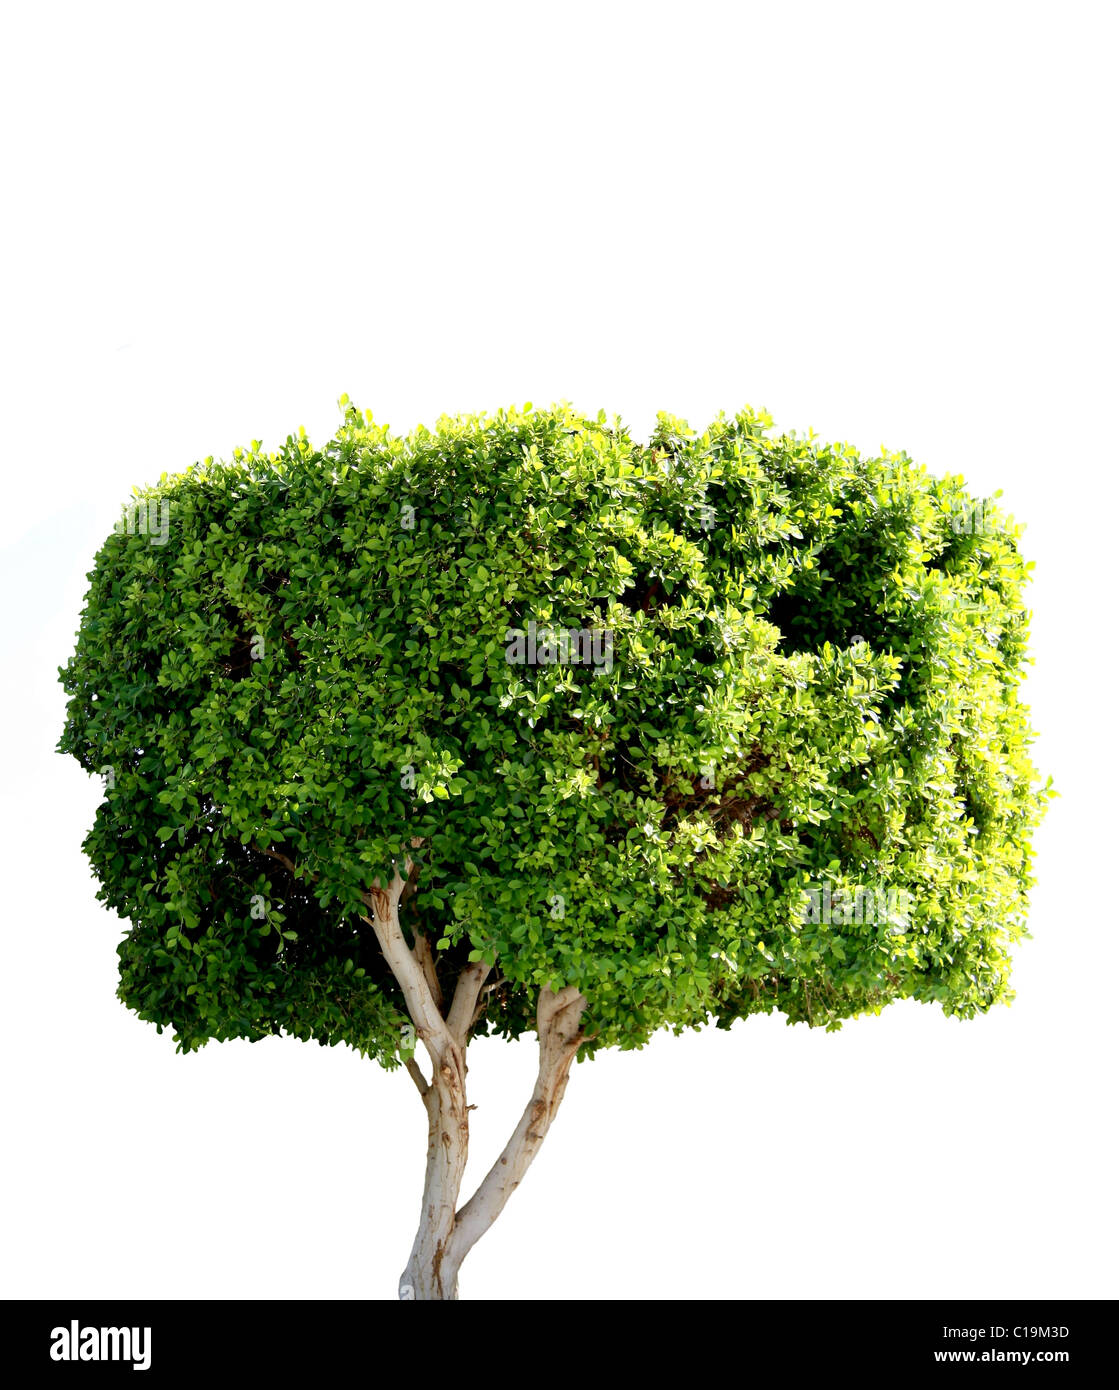 small dark green tree isolated on white background - Stock Image